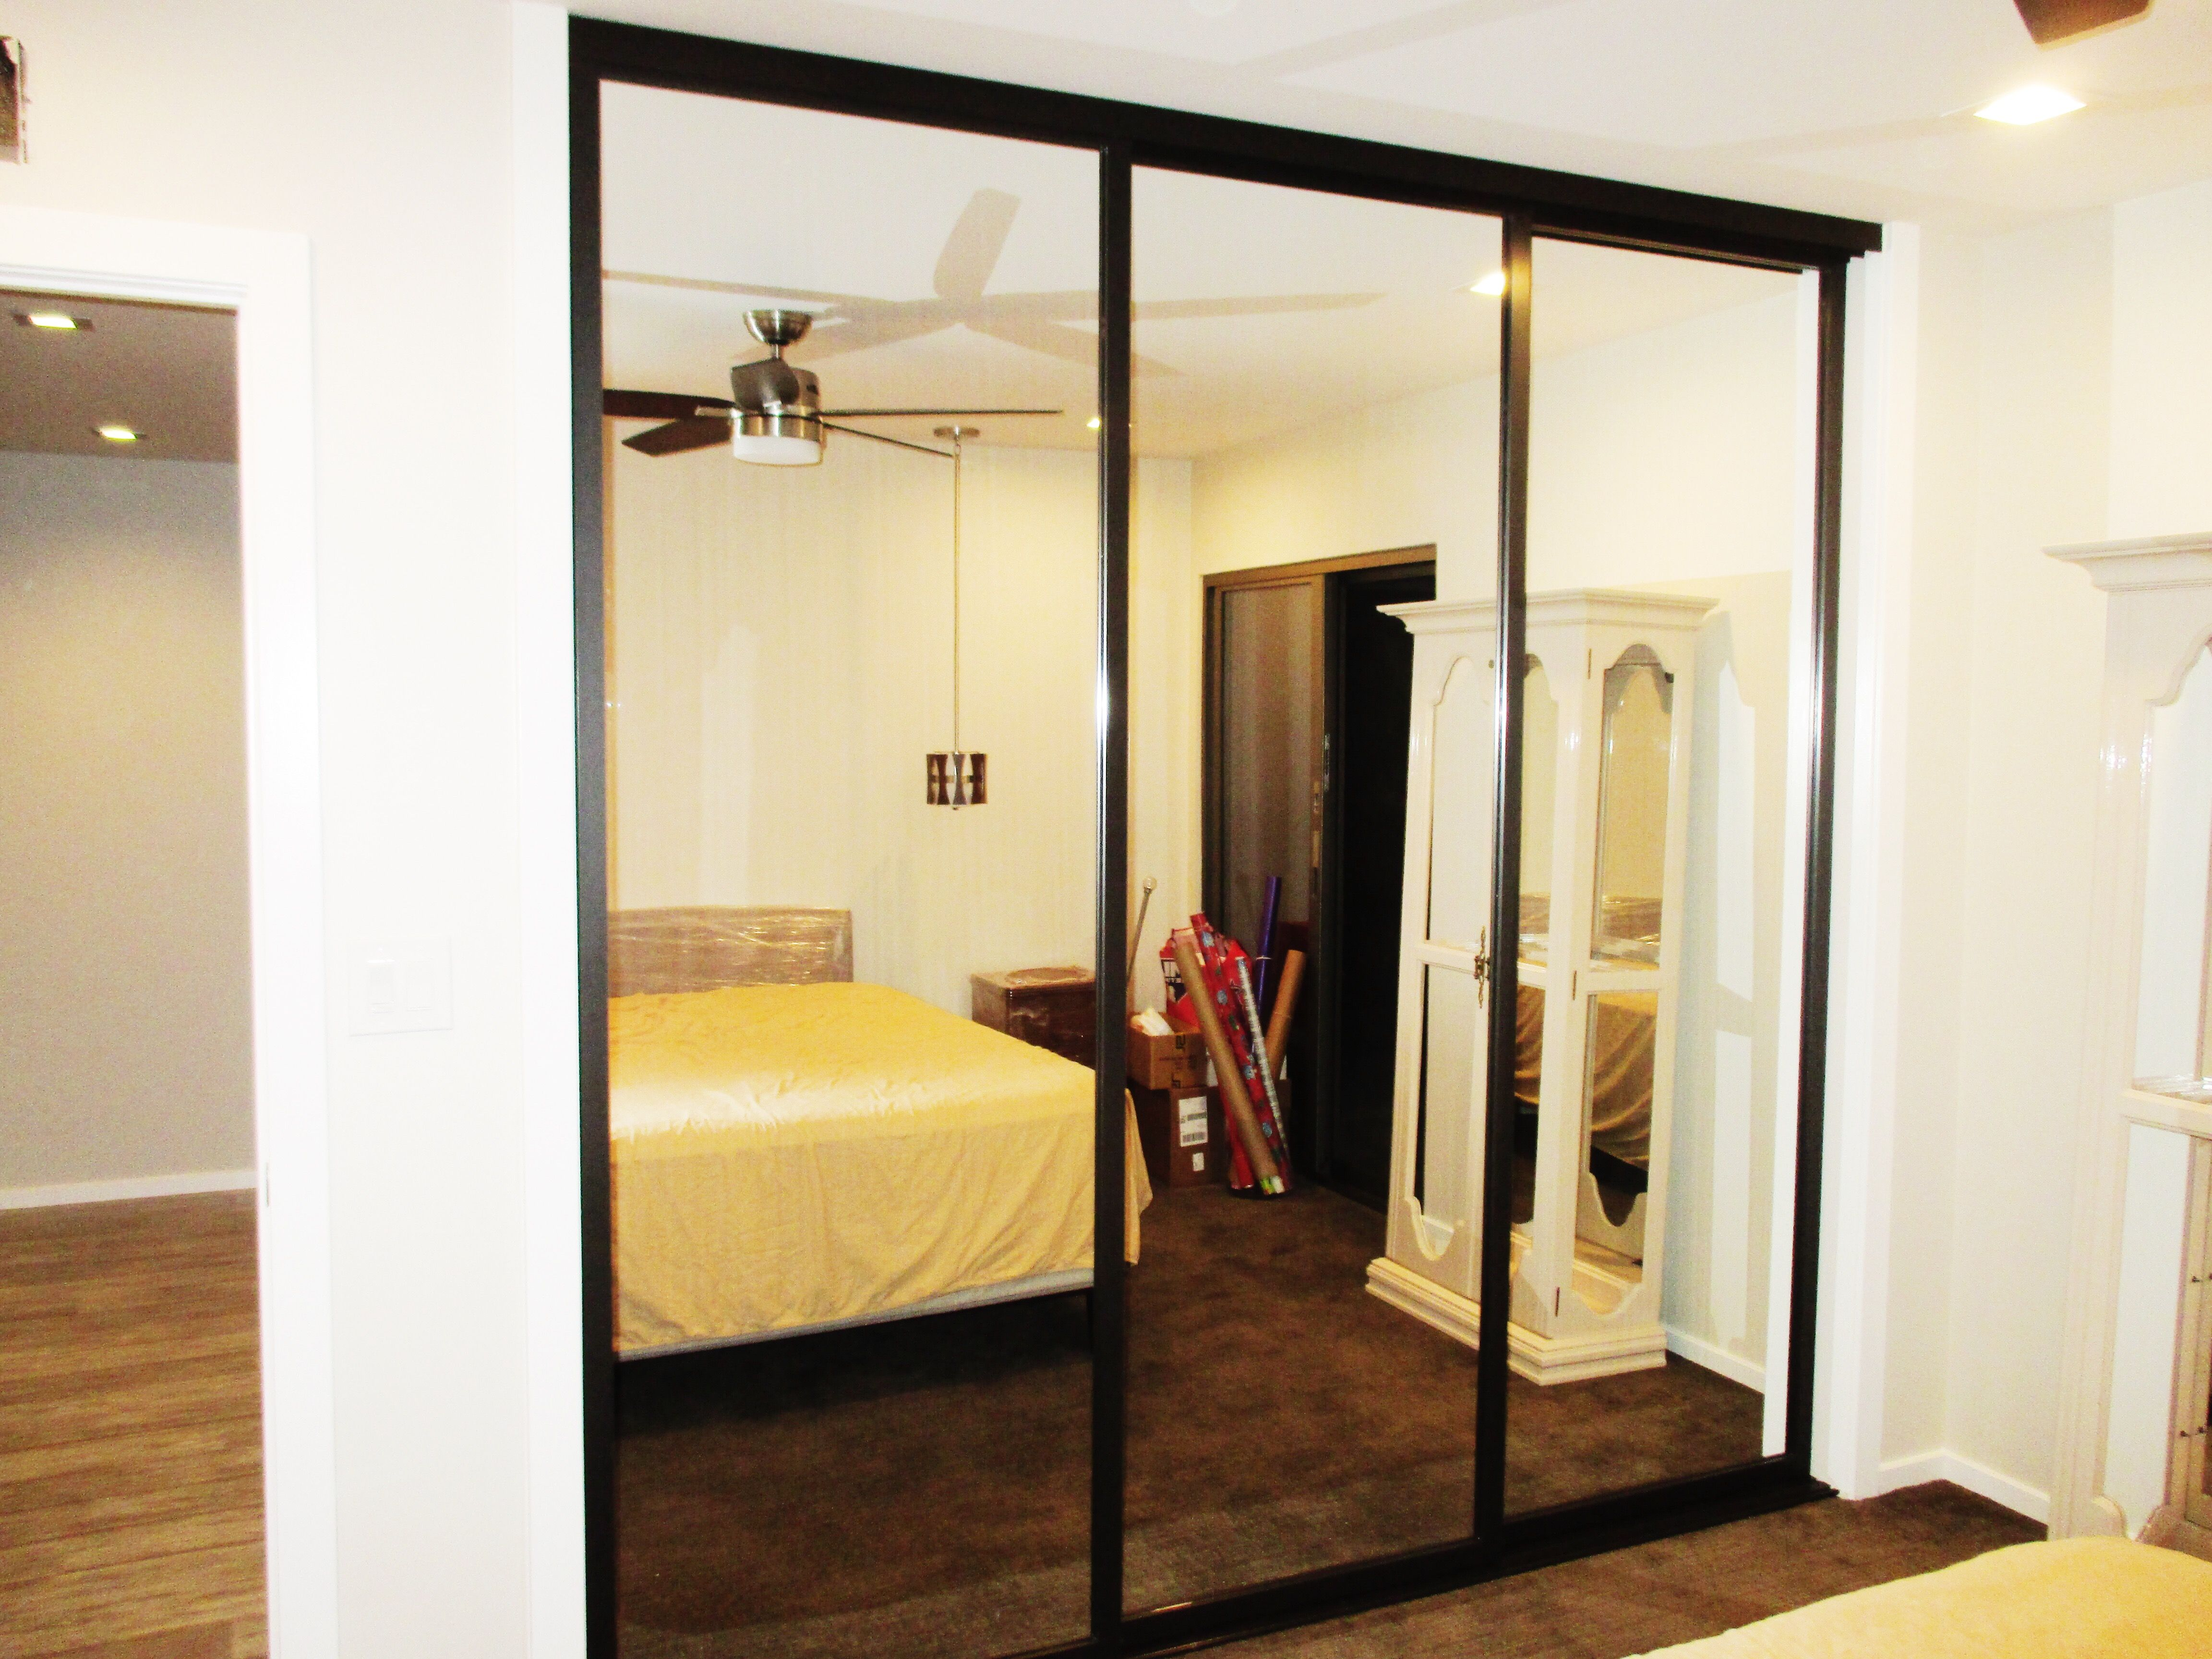 This Is A 3 Panel 3 Track Sliding Closet Door With A Java Frame